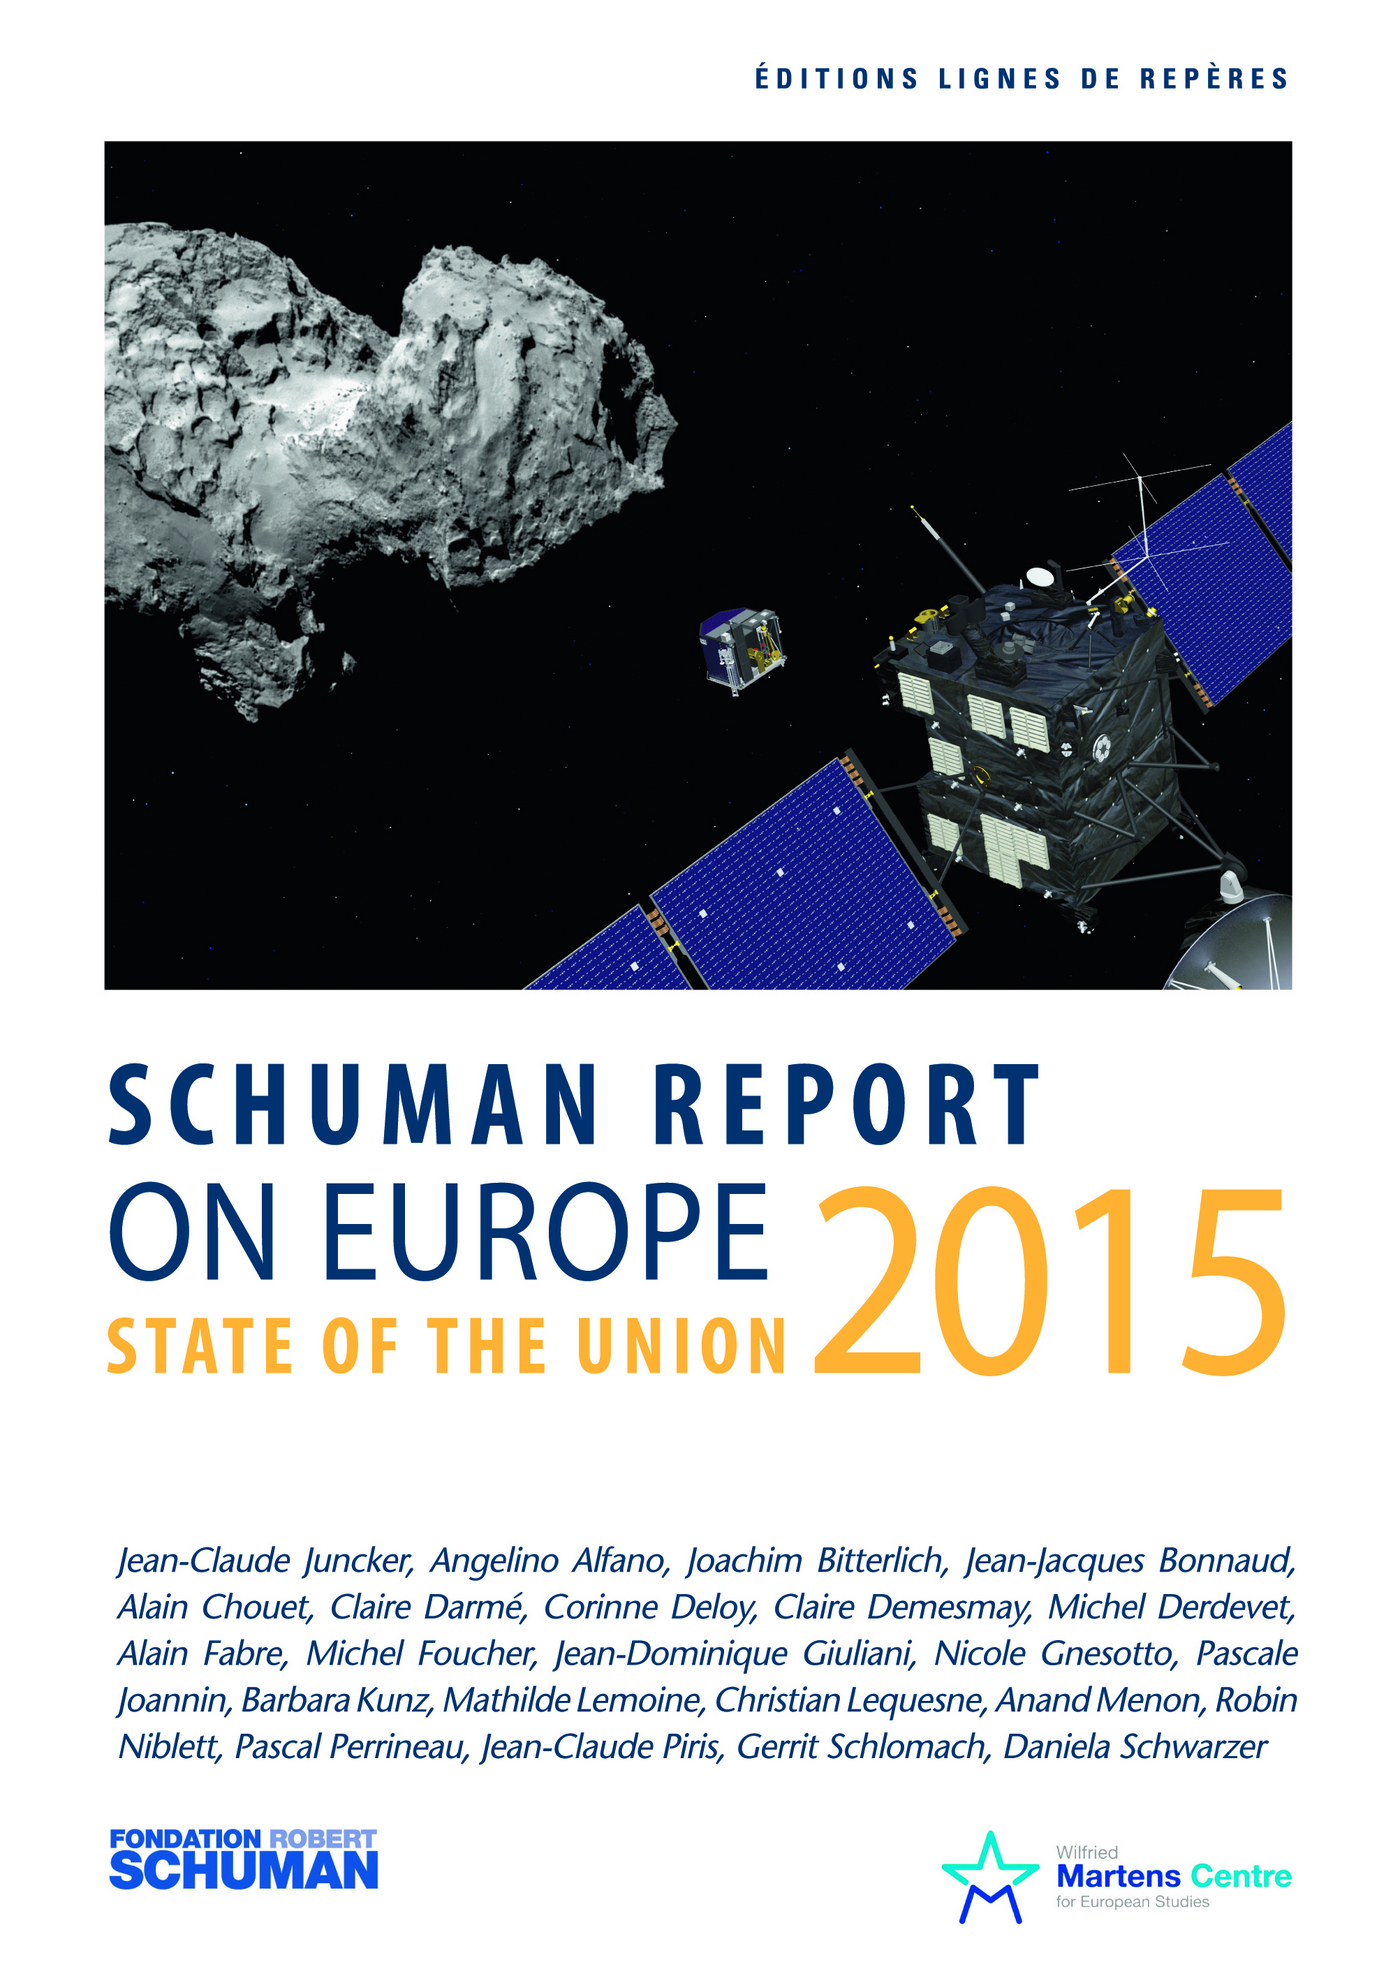 State of the Union Schuman report 2015 on Europe